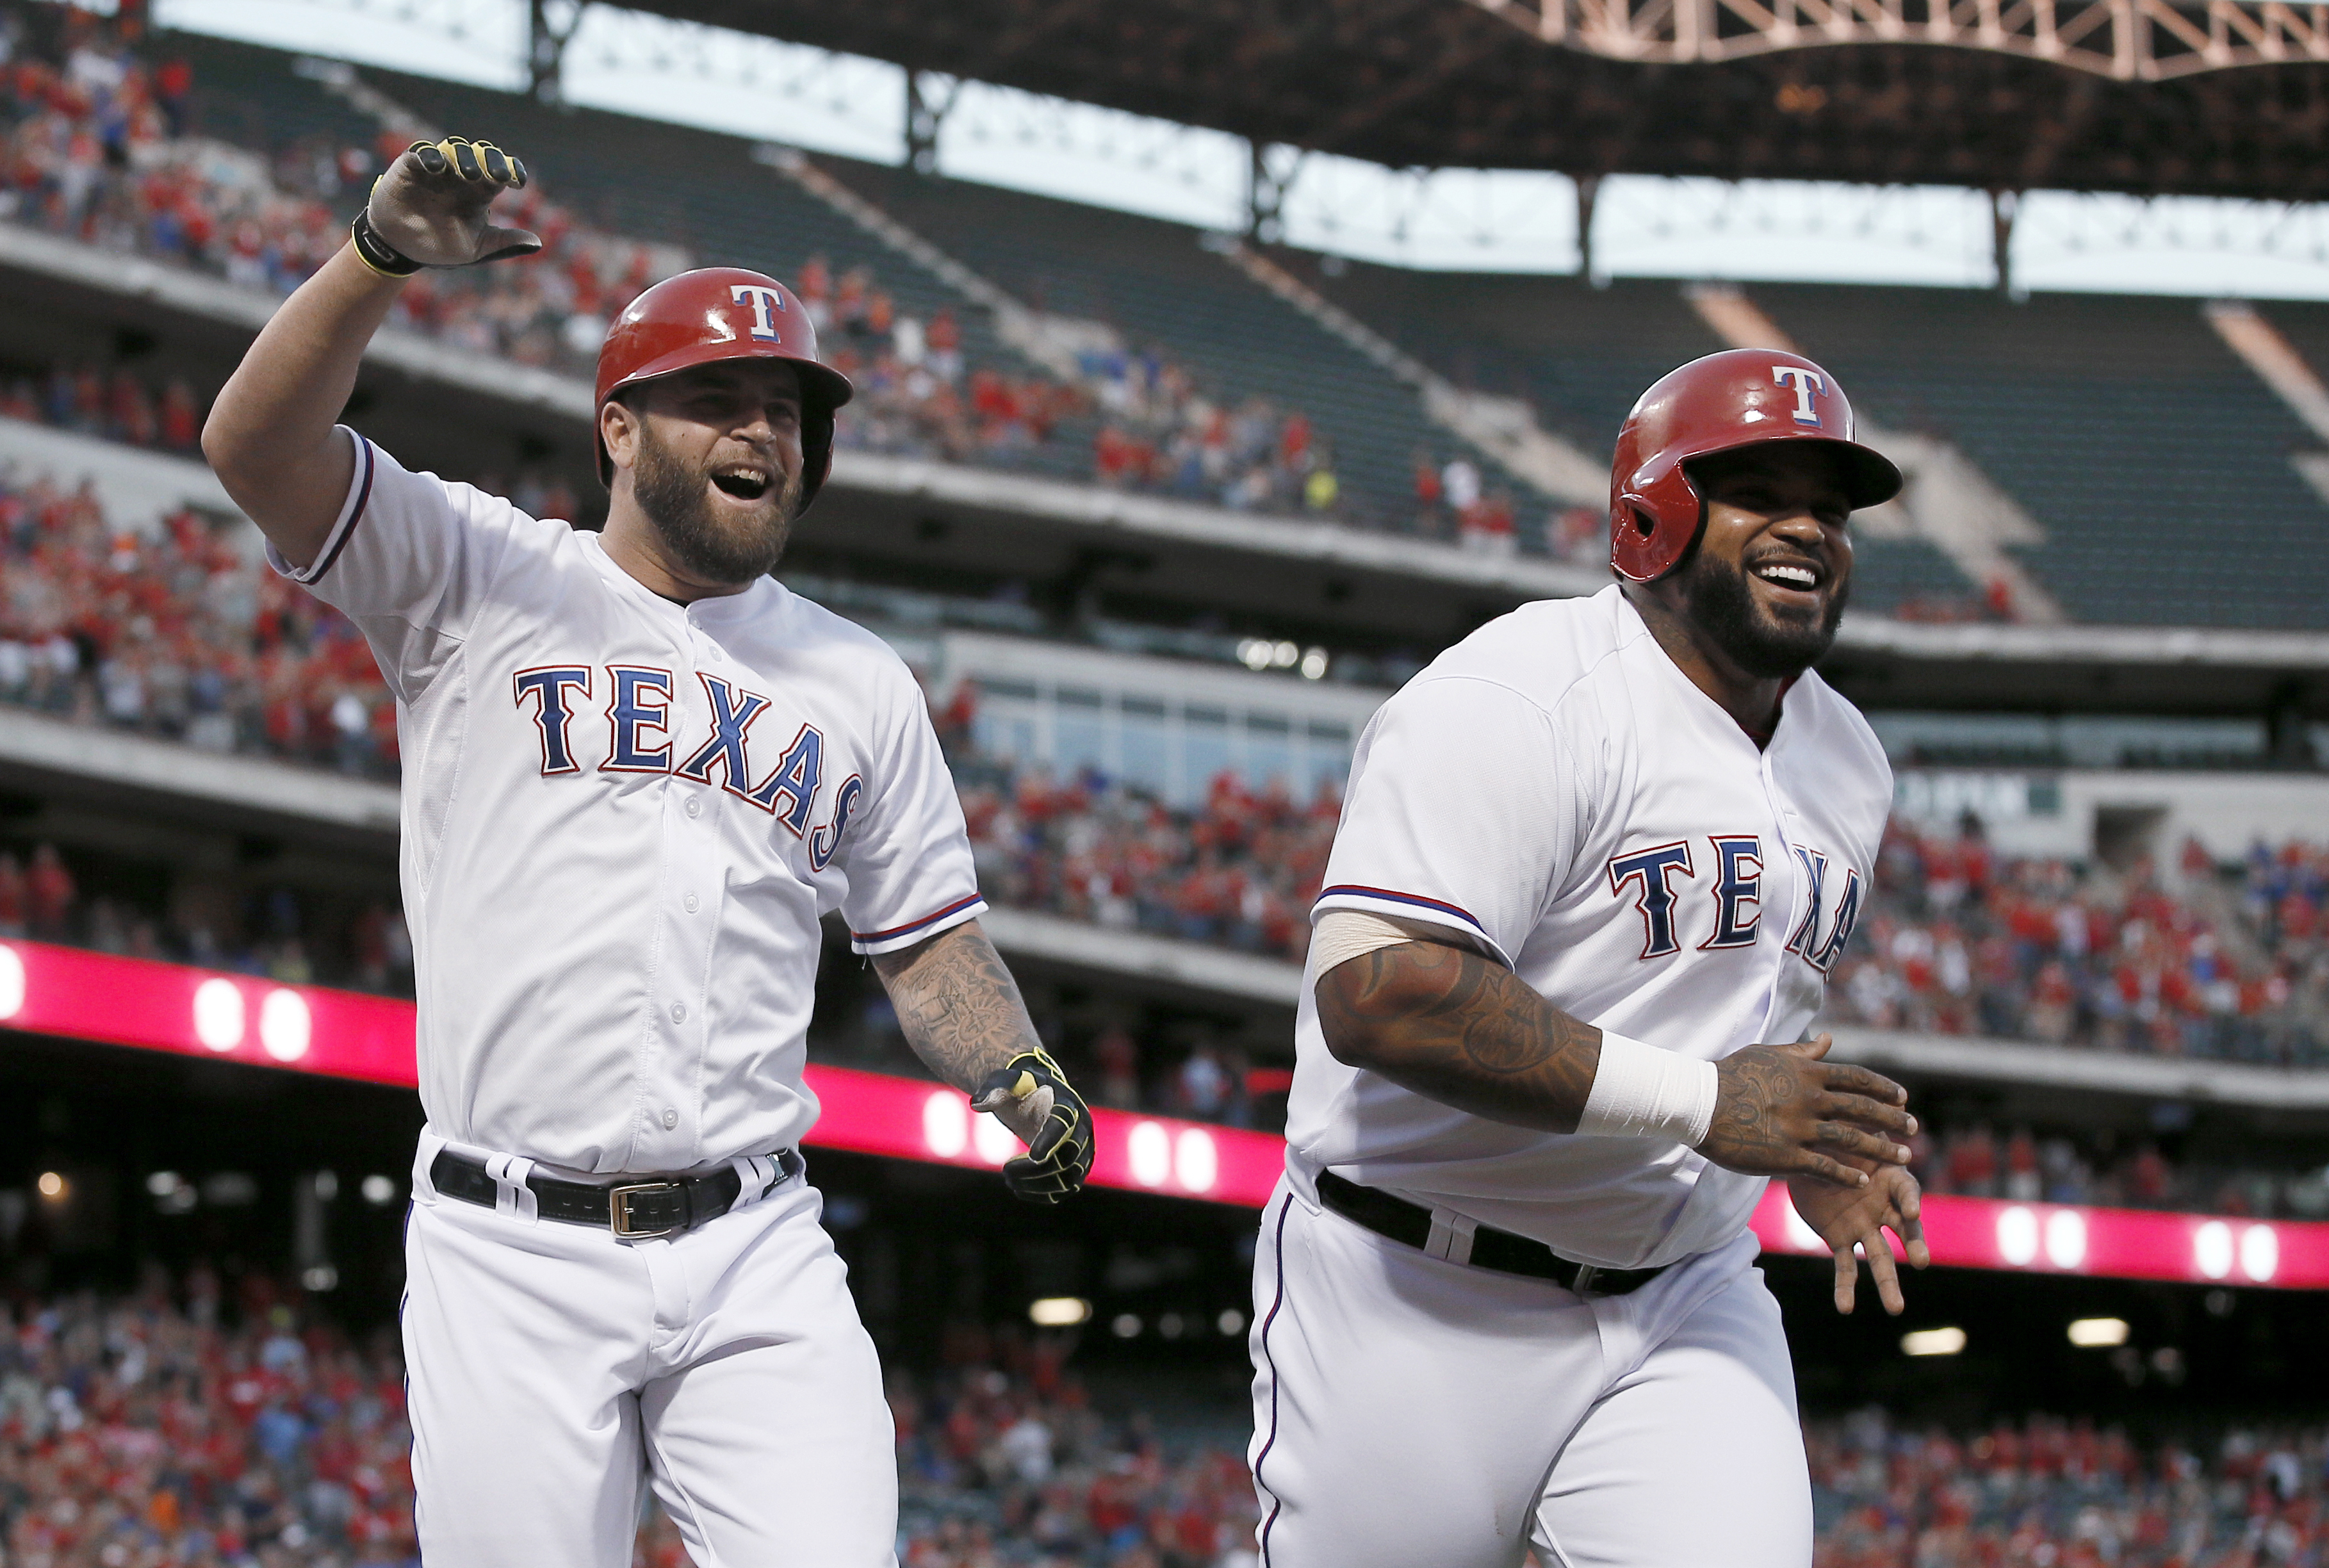 Texas Rangers' Mike Napoli, left, and Prince Fielder, right, celebrate a three-run home run by Napoli off Houston Astros' Dallas Keuchel during the first inning of a baseball game Wednesday, Sept. 16, 2015, in Arlington, Texas. The shot scored Fielder and